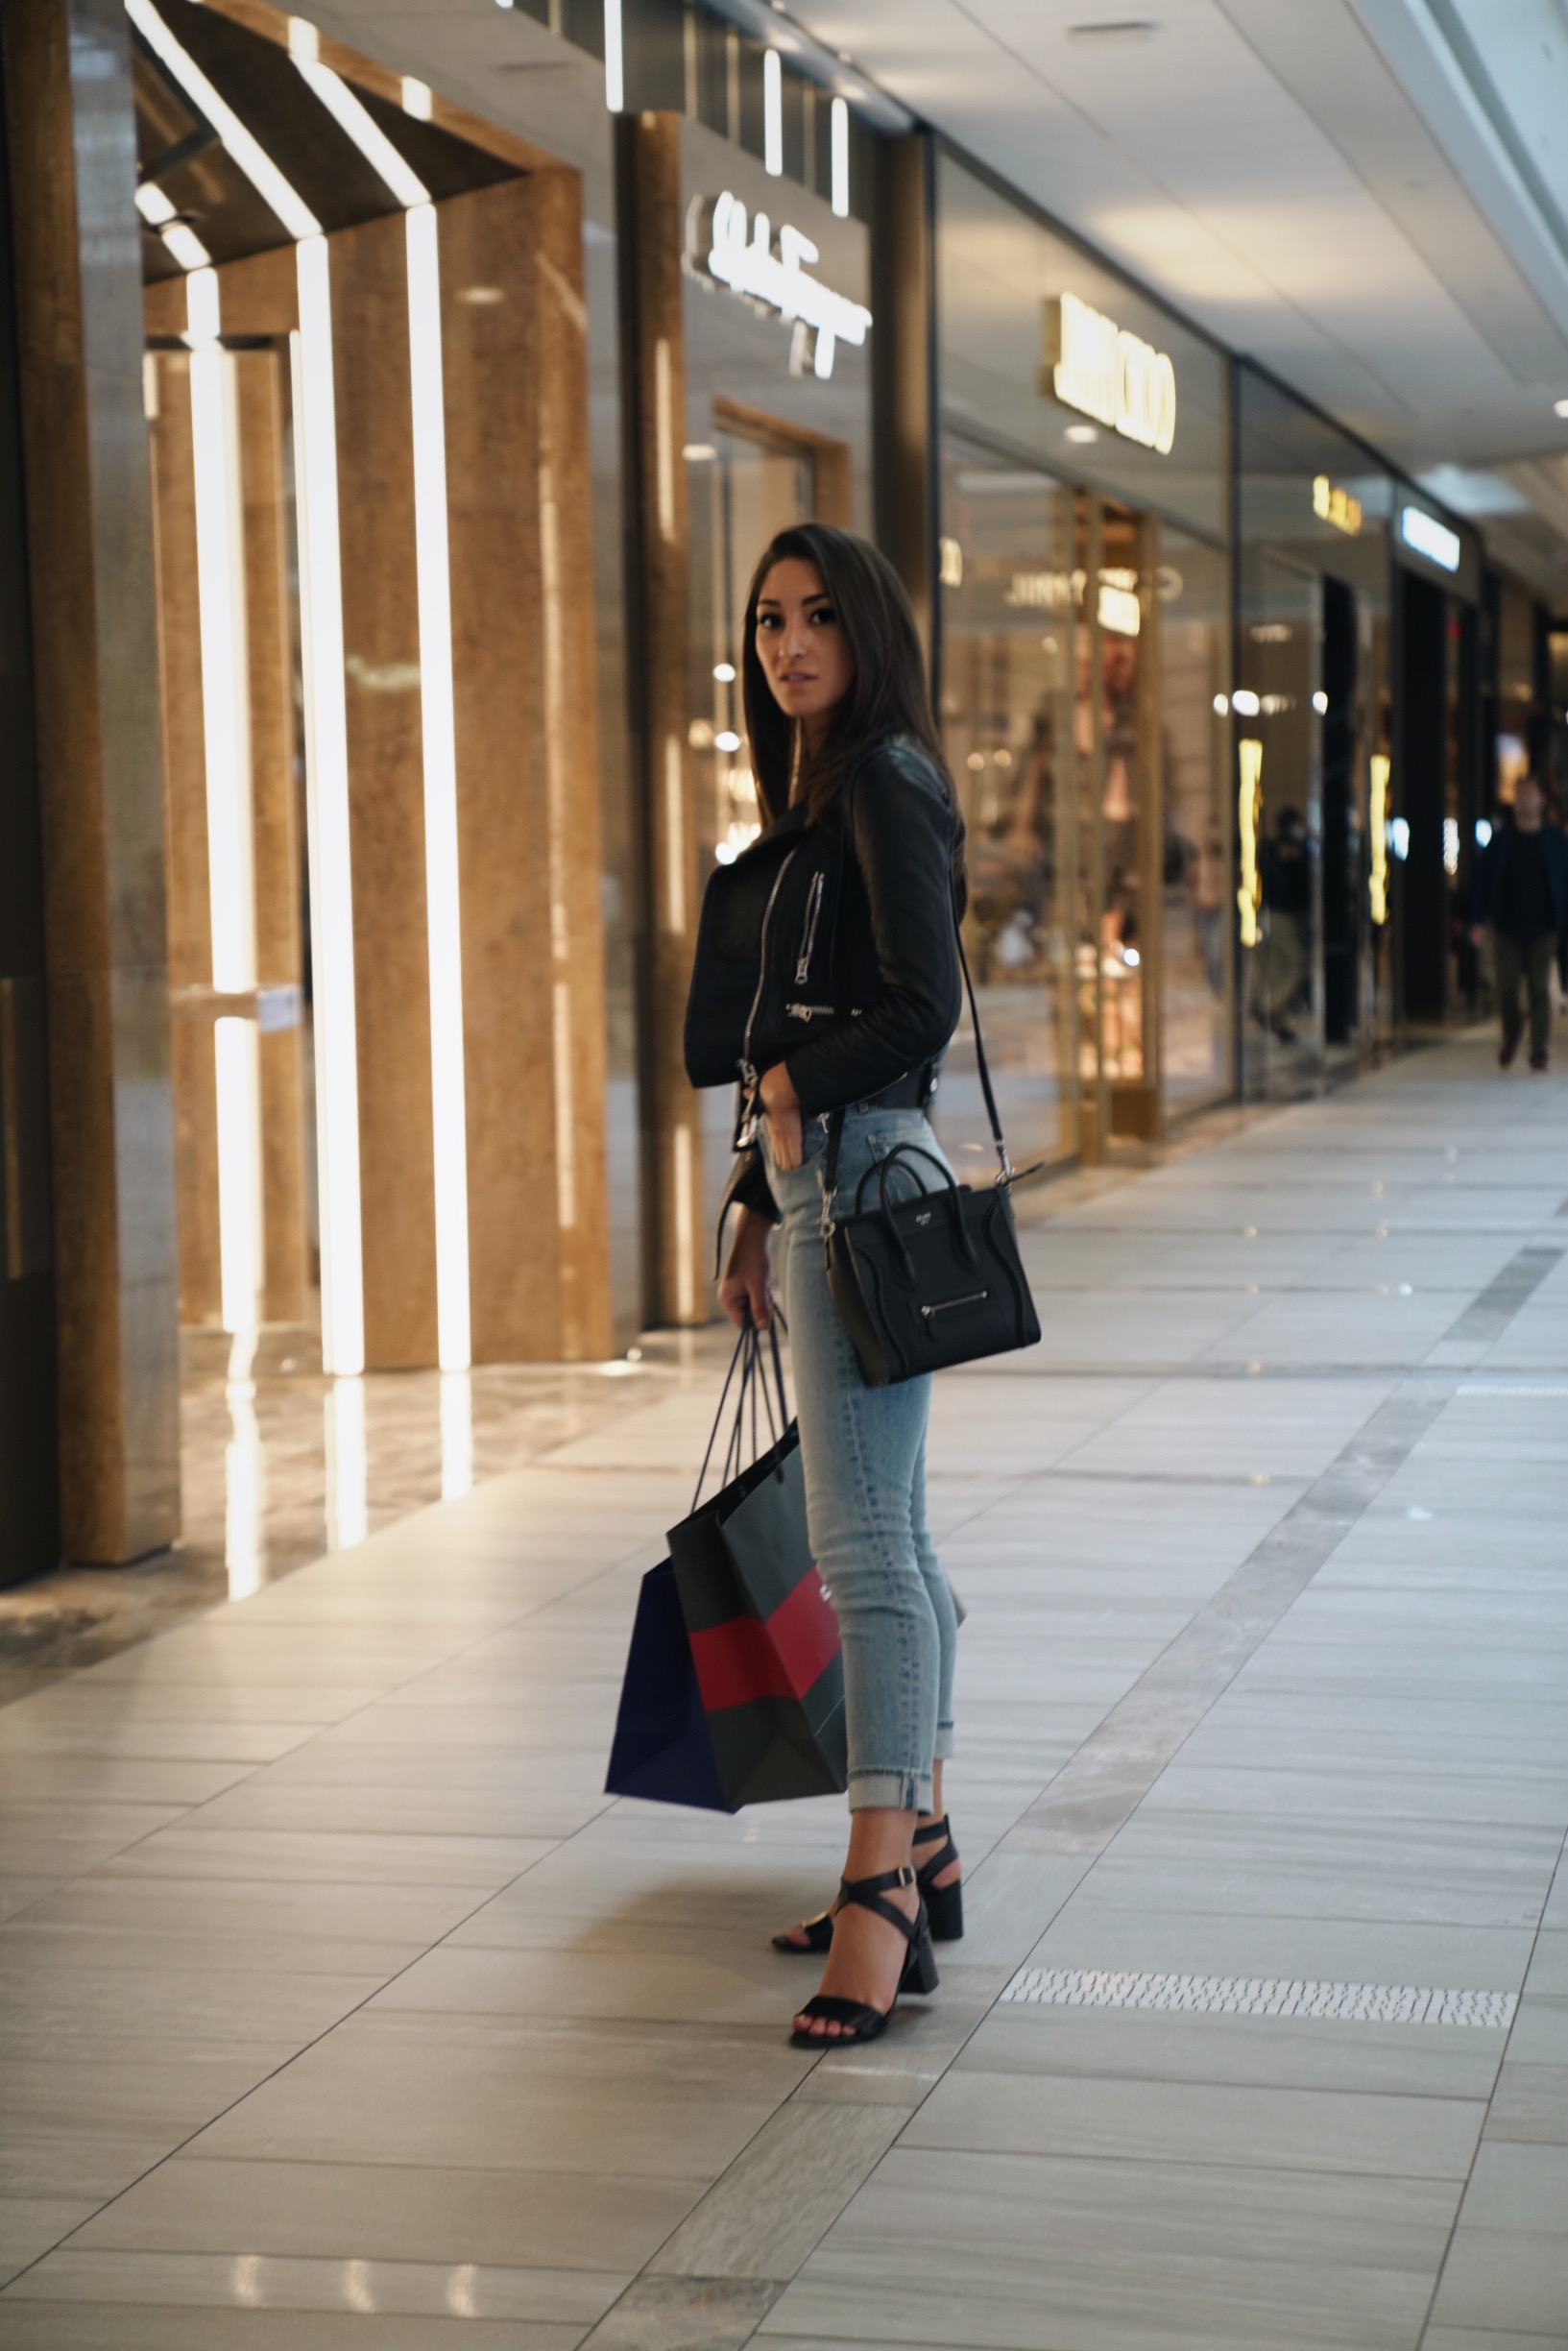 For Kira MacLean, Copley Place has quickly become her go-to shopping destination.